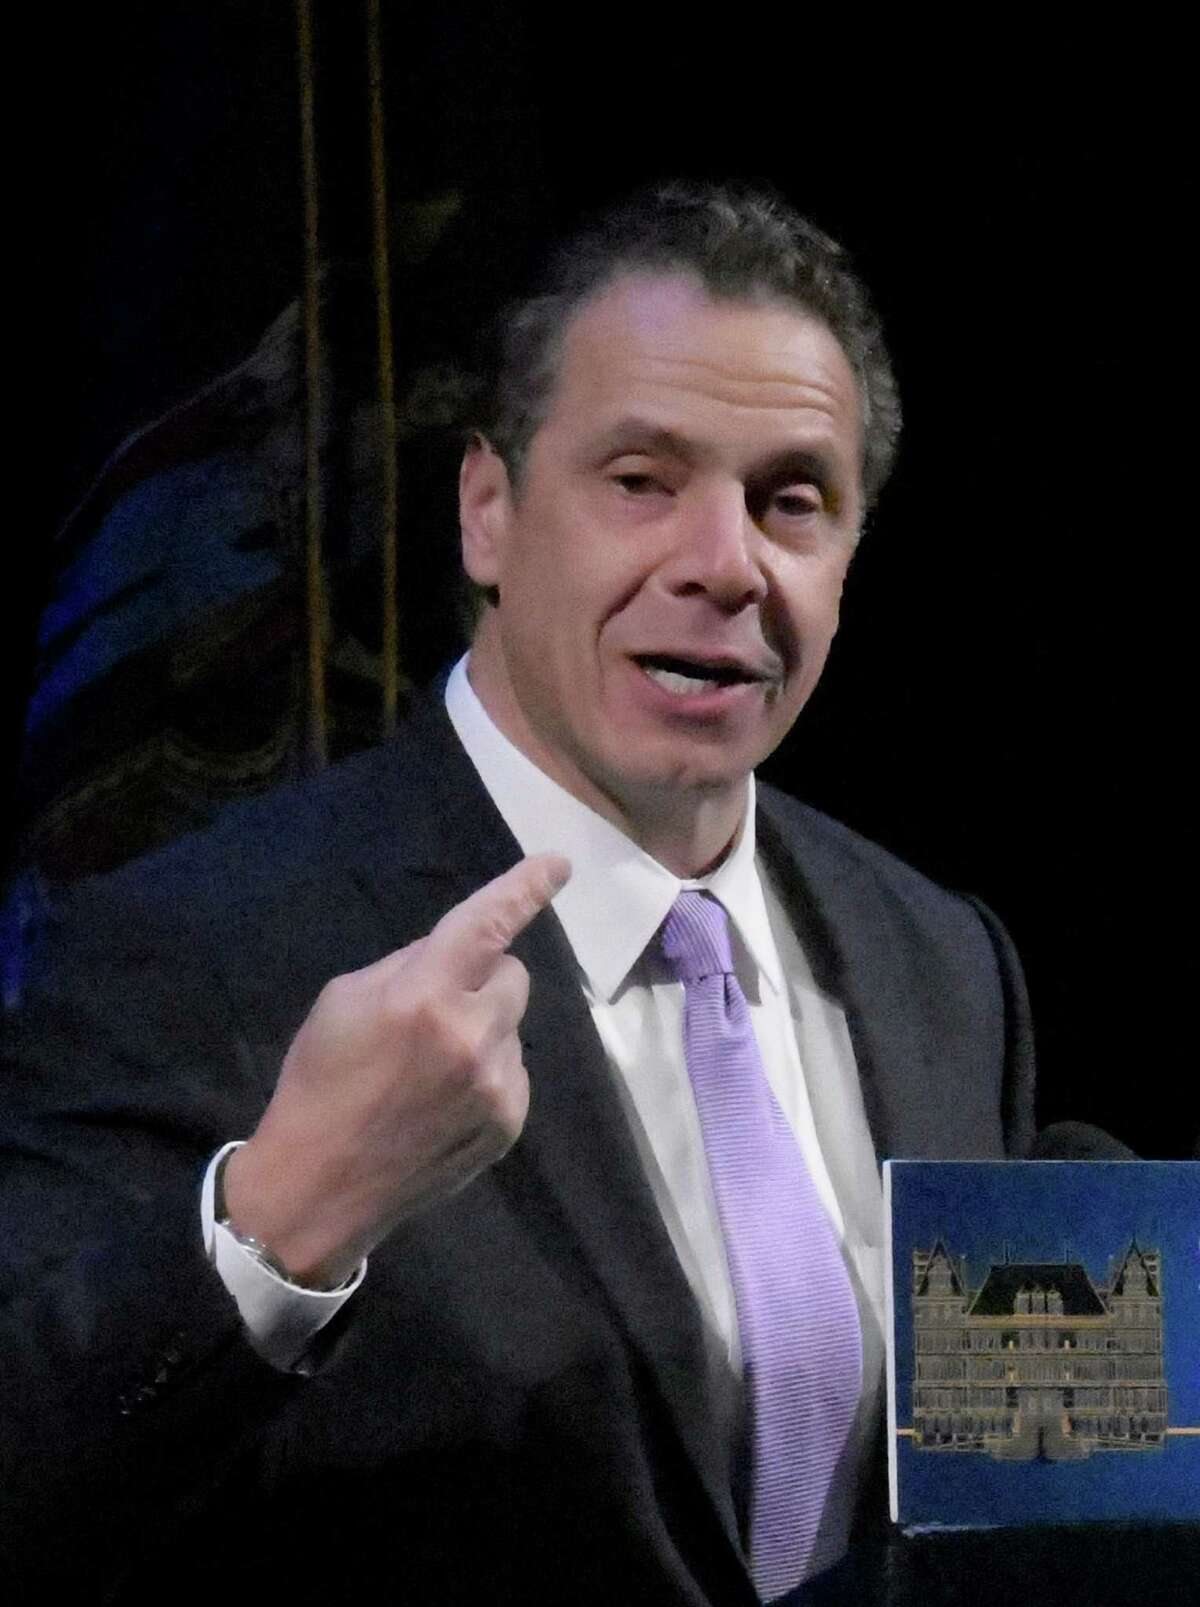 Governor Andrew Cuomo addresses the Regional Conference on Sustainable Community Development and was tasked with introducing HUD Secretary Julian Castro Tuesday Nov. 29, 2016 in Schenectady, N.Y. (Skip Dickstein/Times Union)